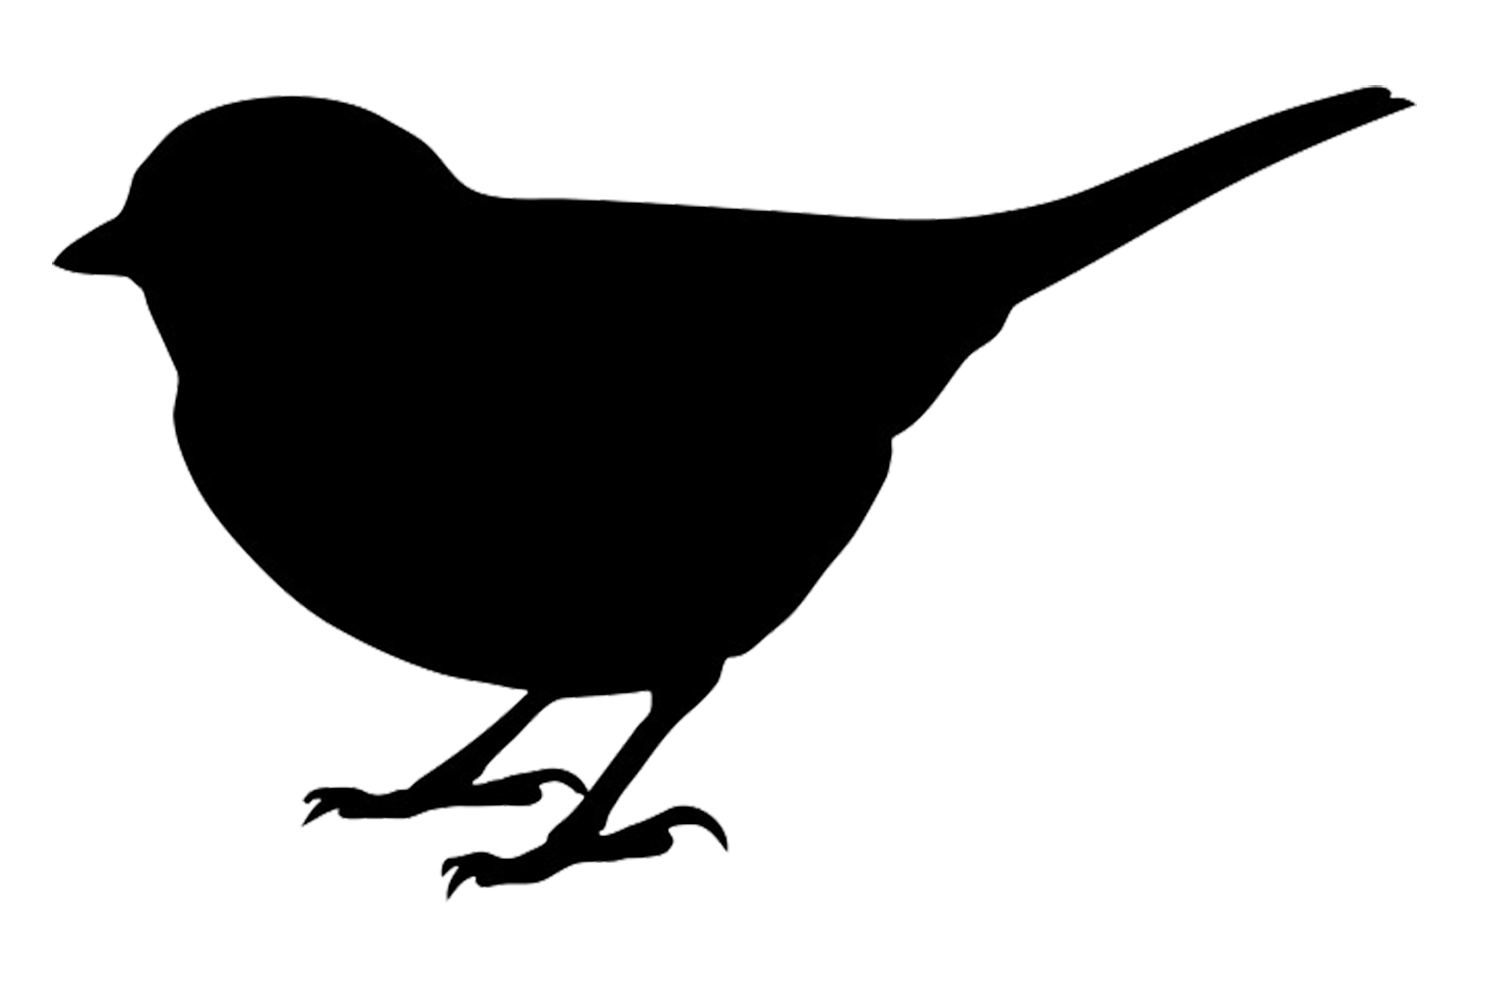 Flying Bird Silhouette Clipart - Clipart Kid